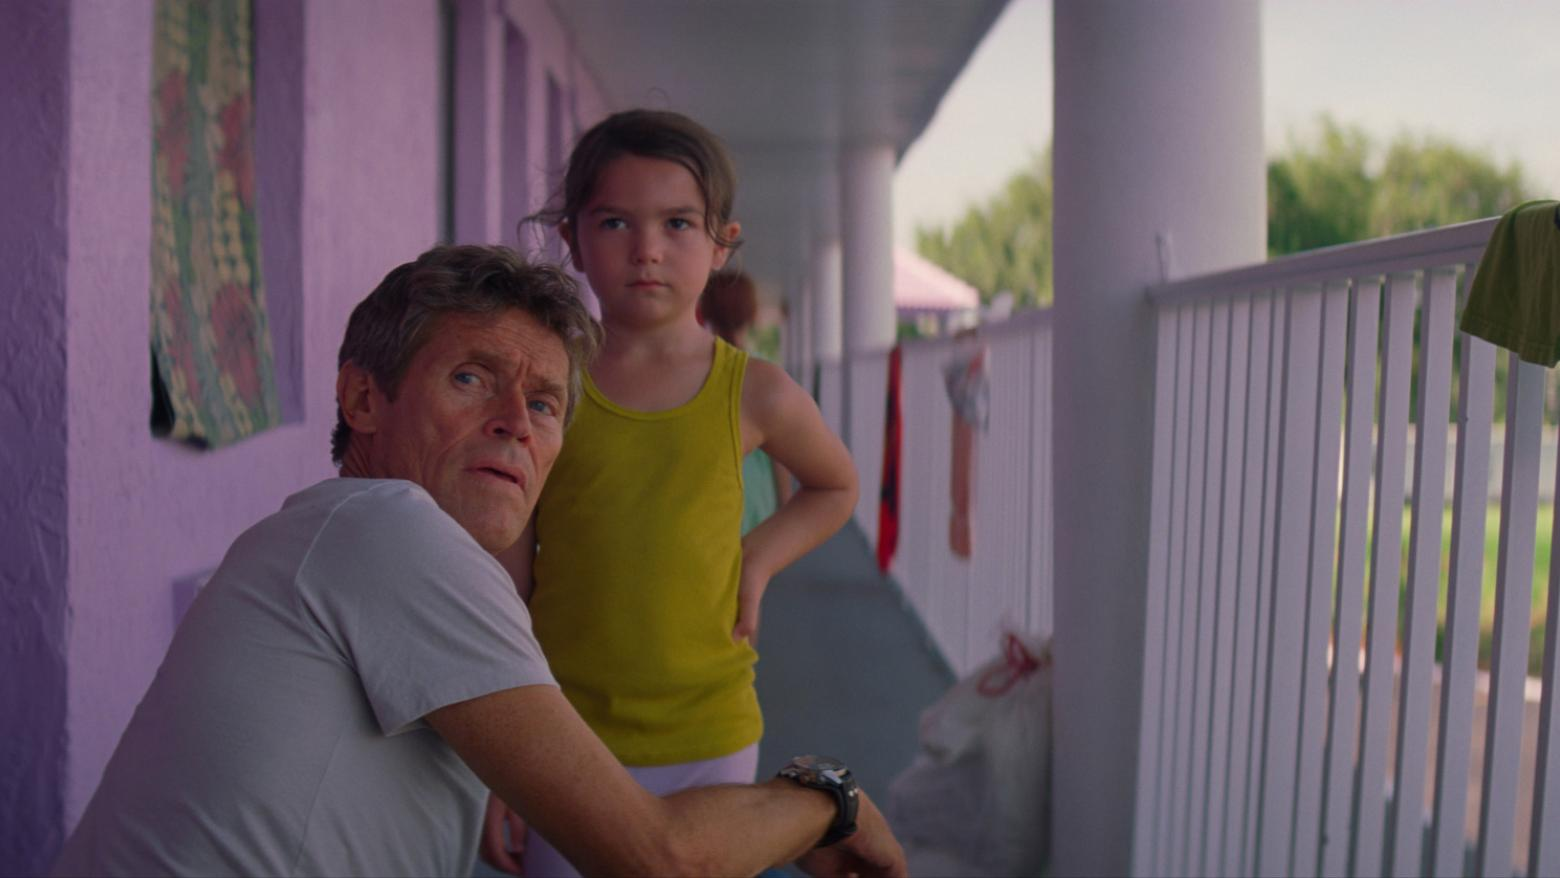 The Florida Project. 2017. USA. Directed by Sean Baker. DCP. 115 min. Courtesy of A24 Films.